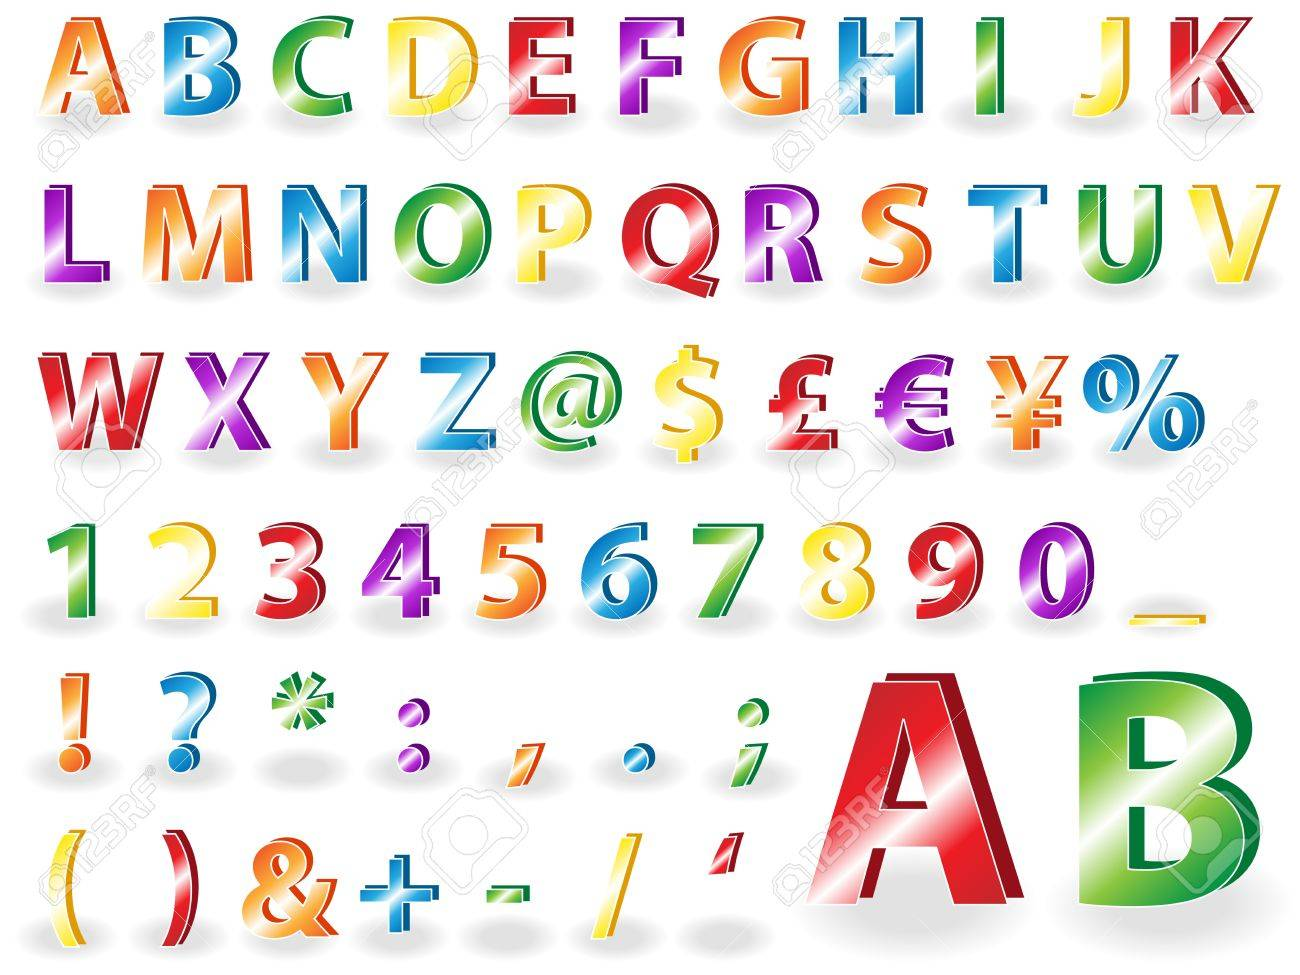 Very Fun Colorful Bold Upper Case Alphabet With Symbols Royalty Free